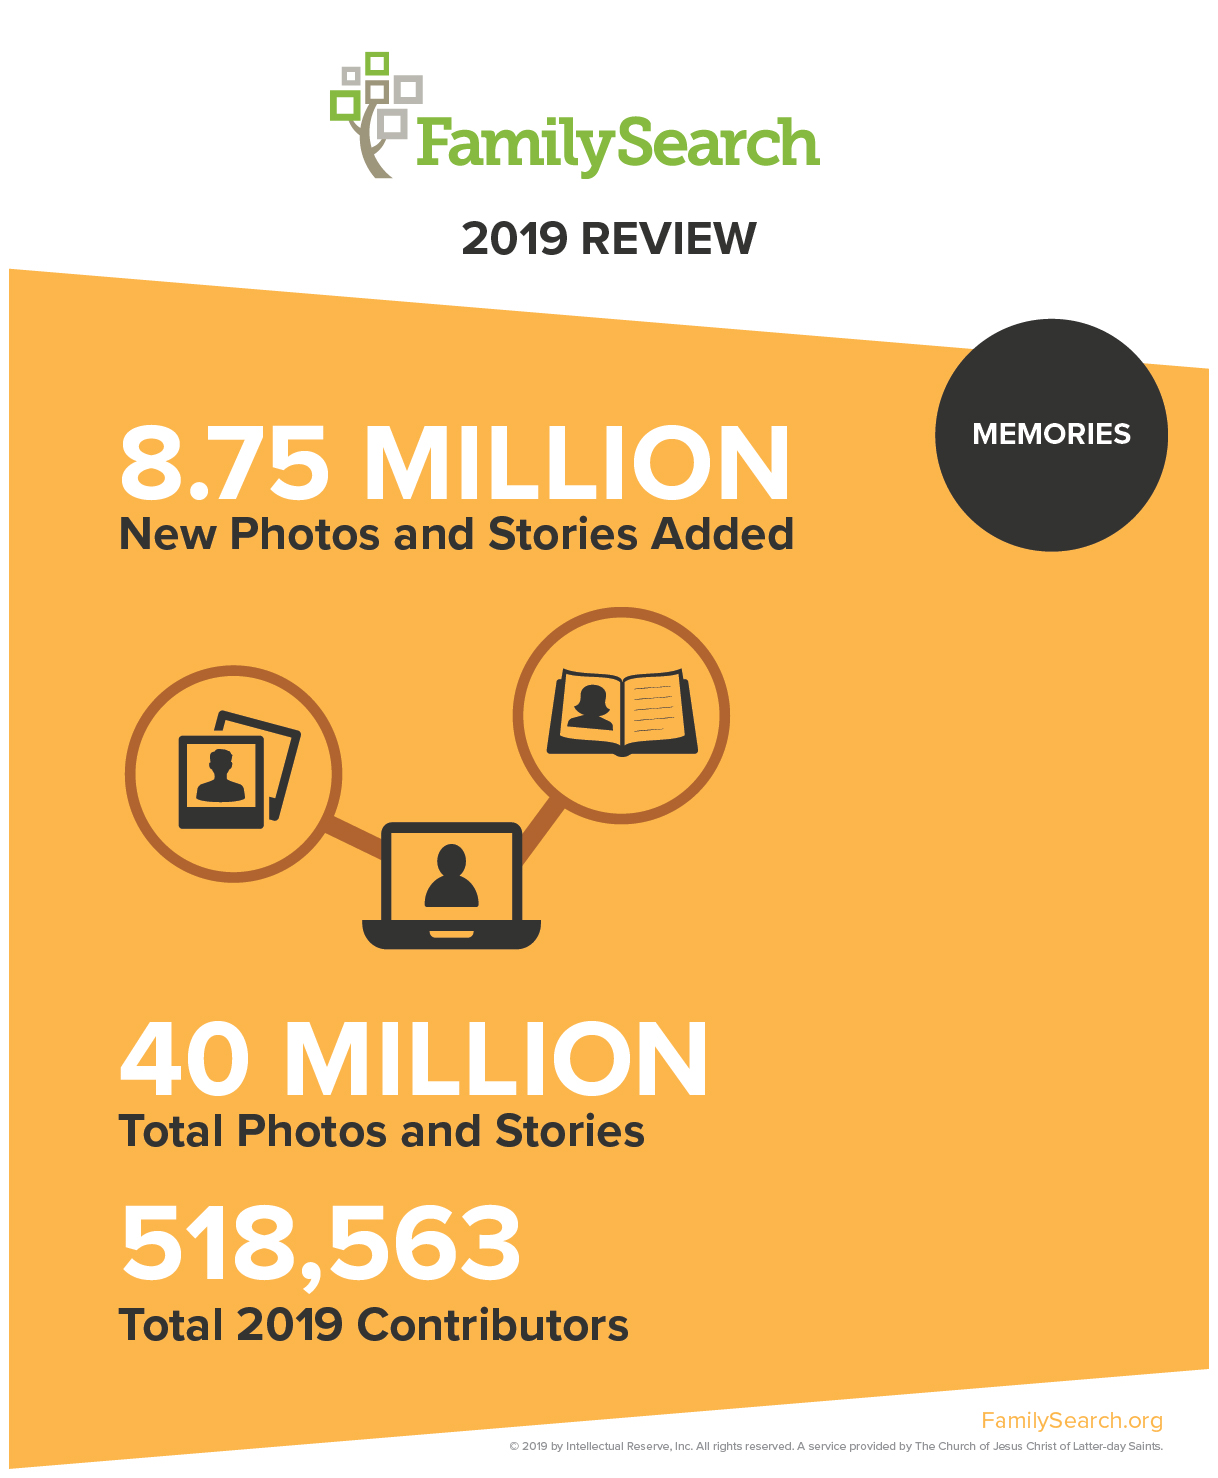 2019 Summary of patron contributions to FamilySearch Memories.